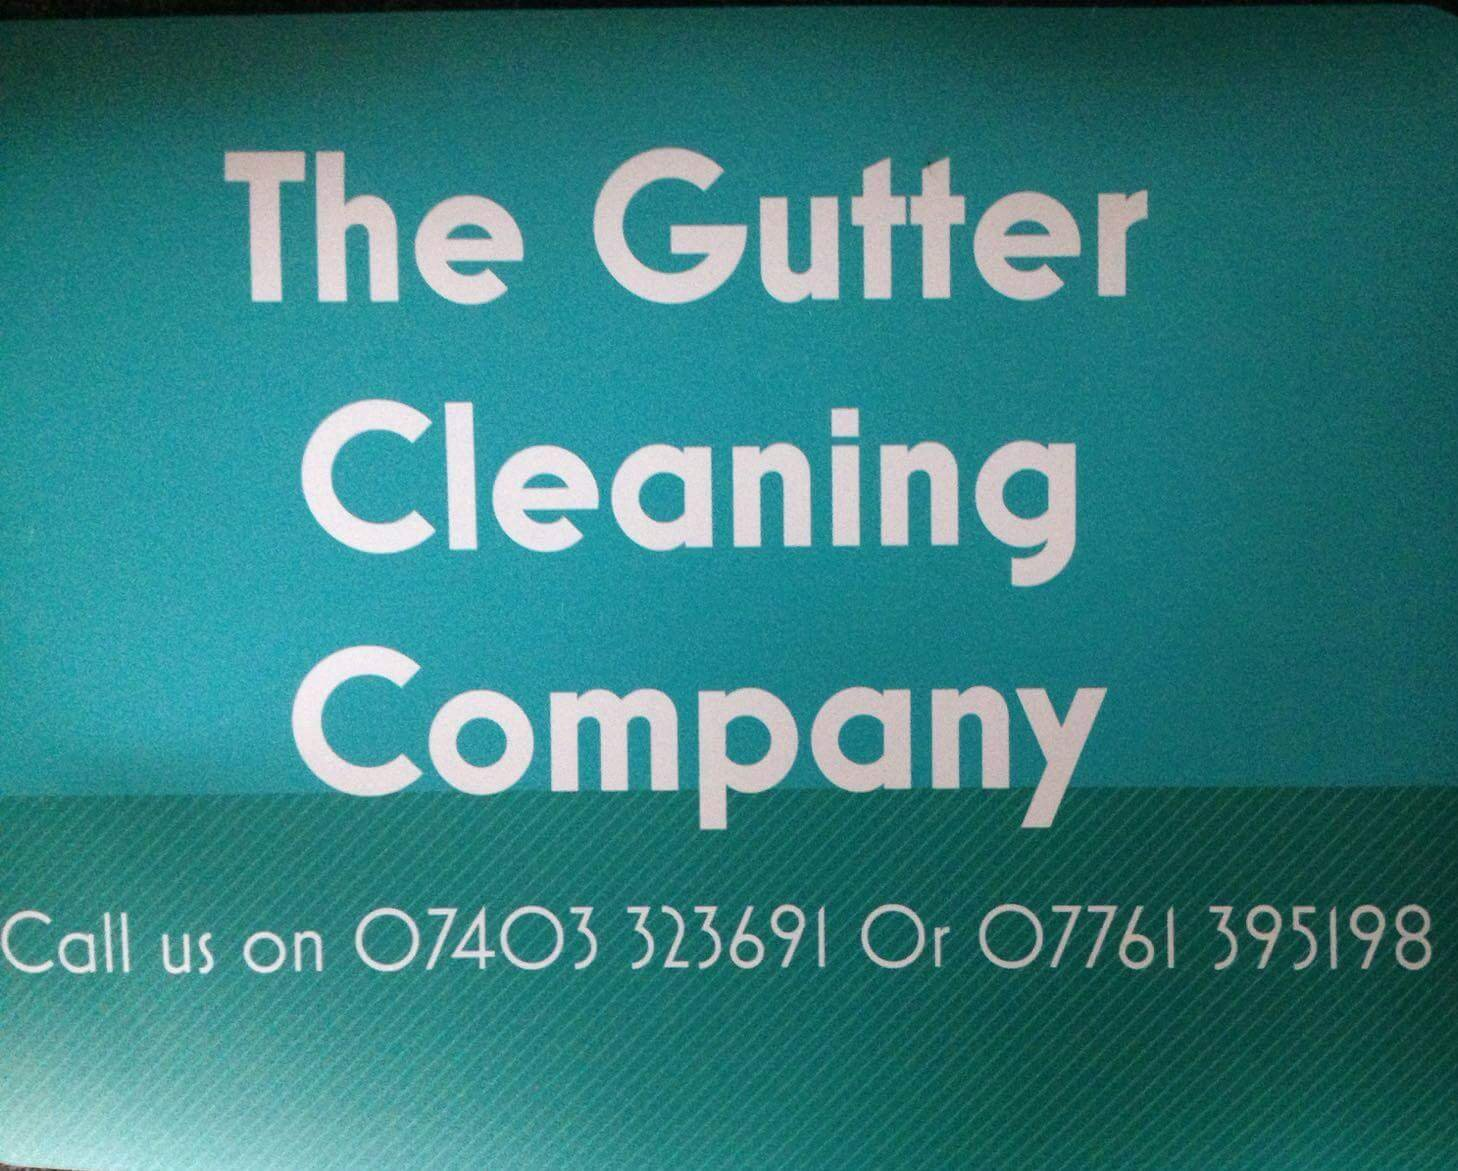 The Gutter Cleaning Company